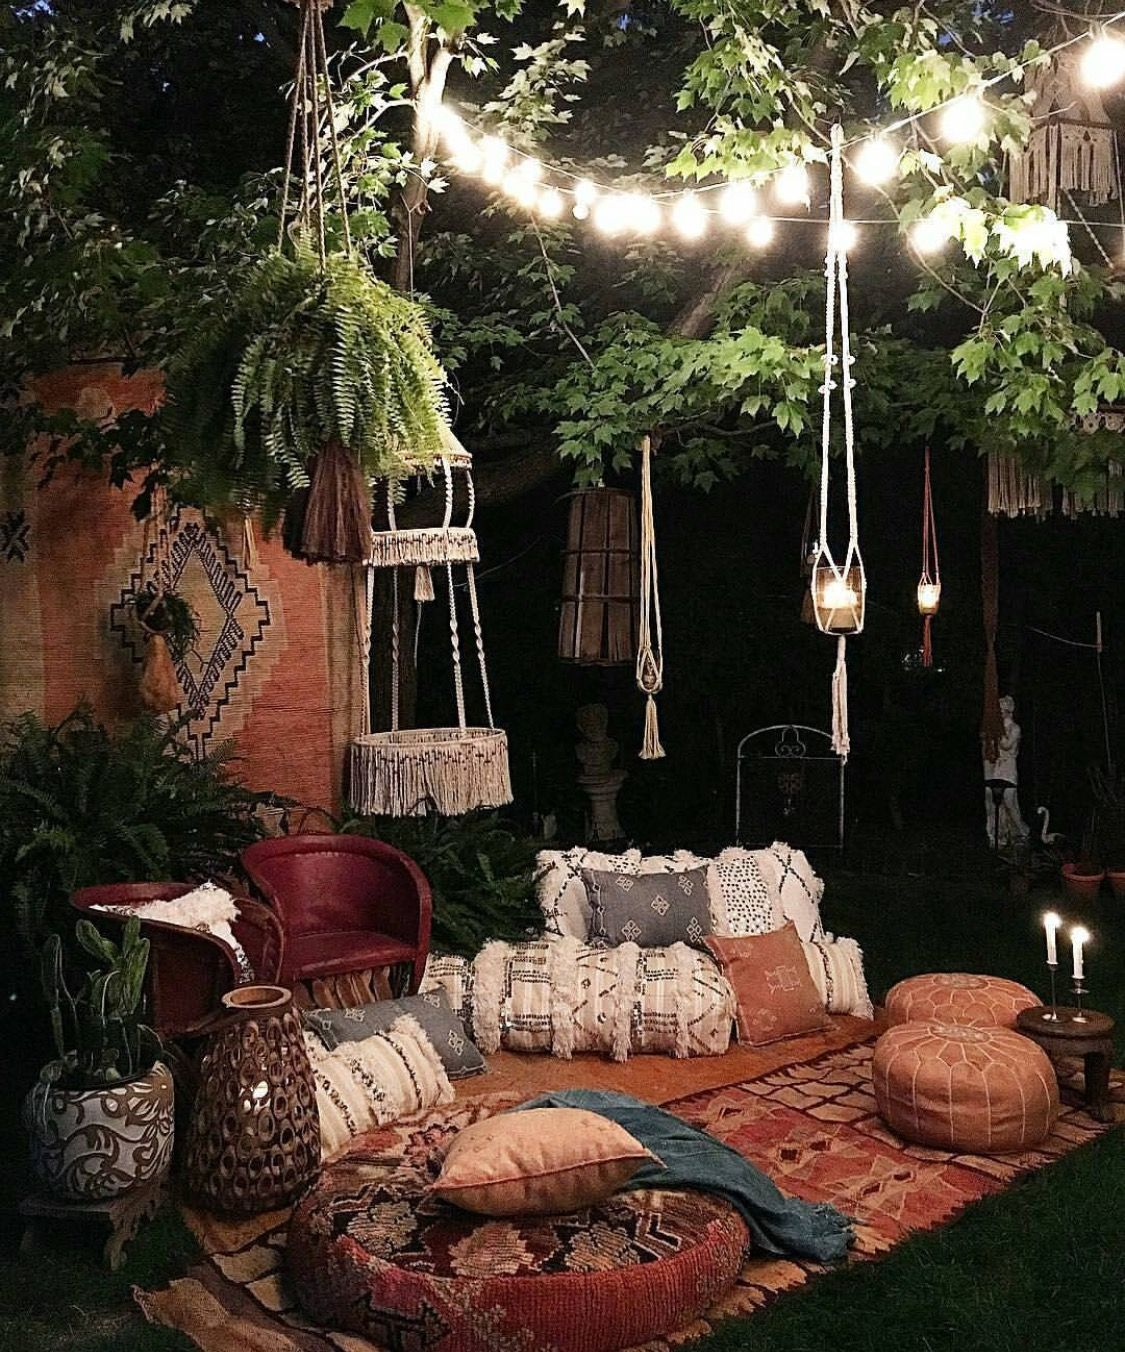 outdoor decor nature decor ideas pinterest wohnen haus und garten. Black Bedroom Furniture Sets. Home Design Ideas